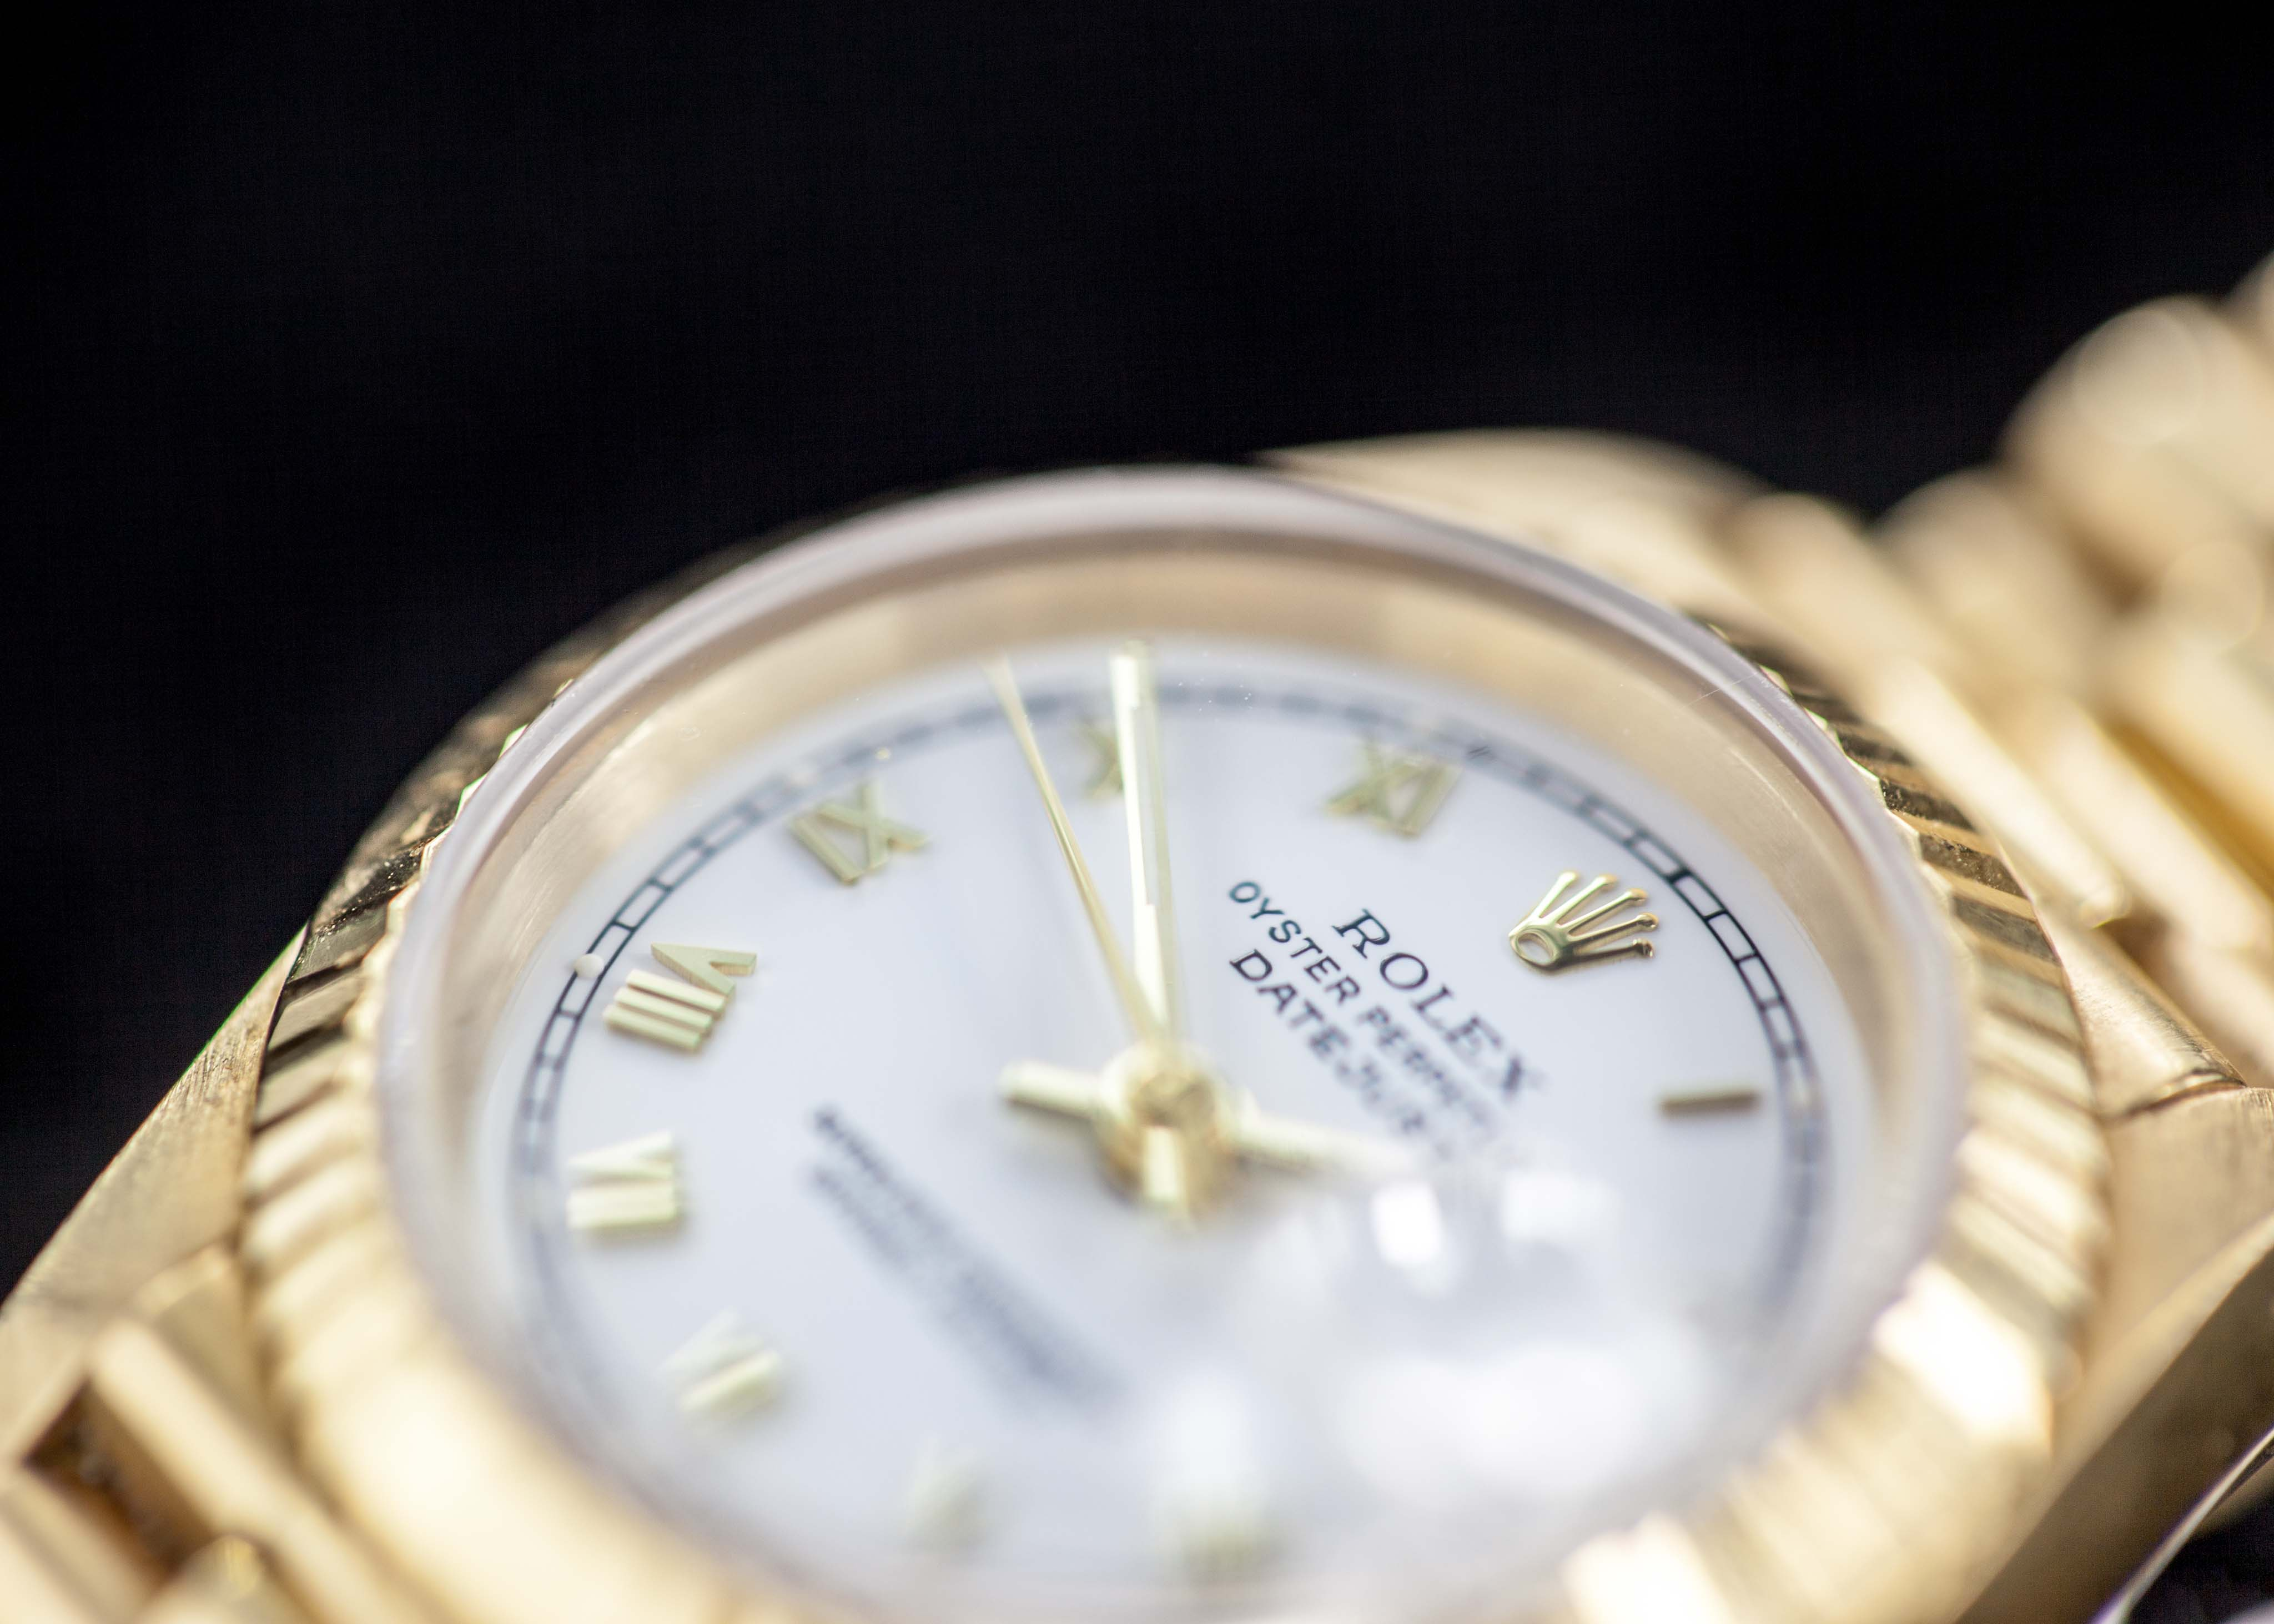 Oyster Lady Datejust